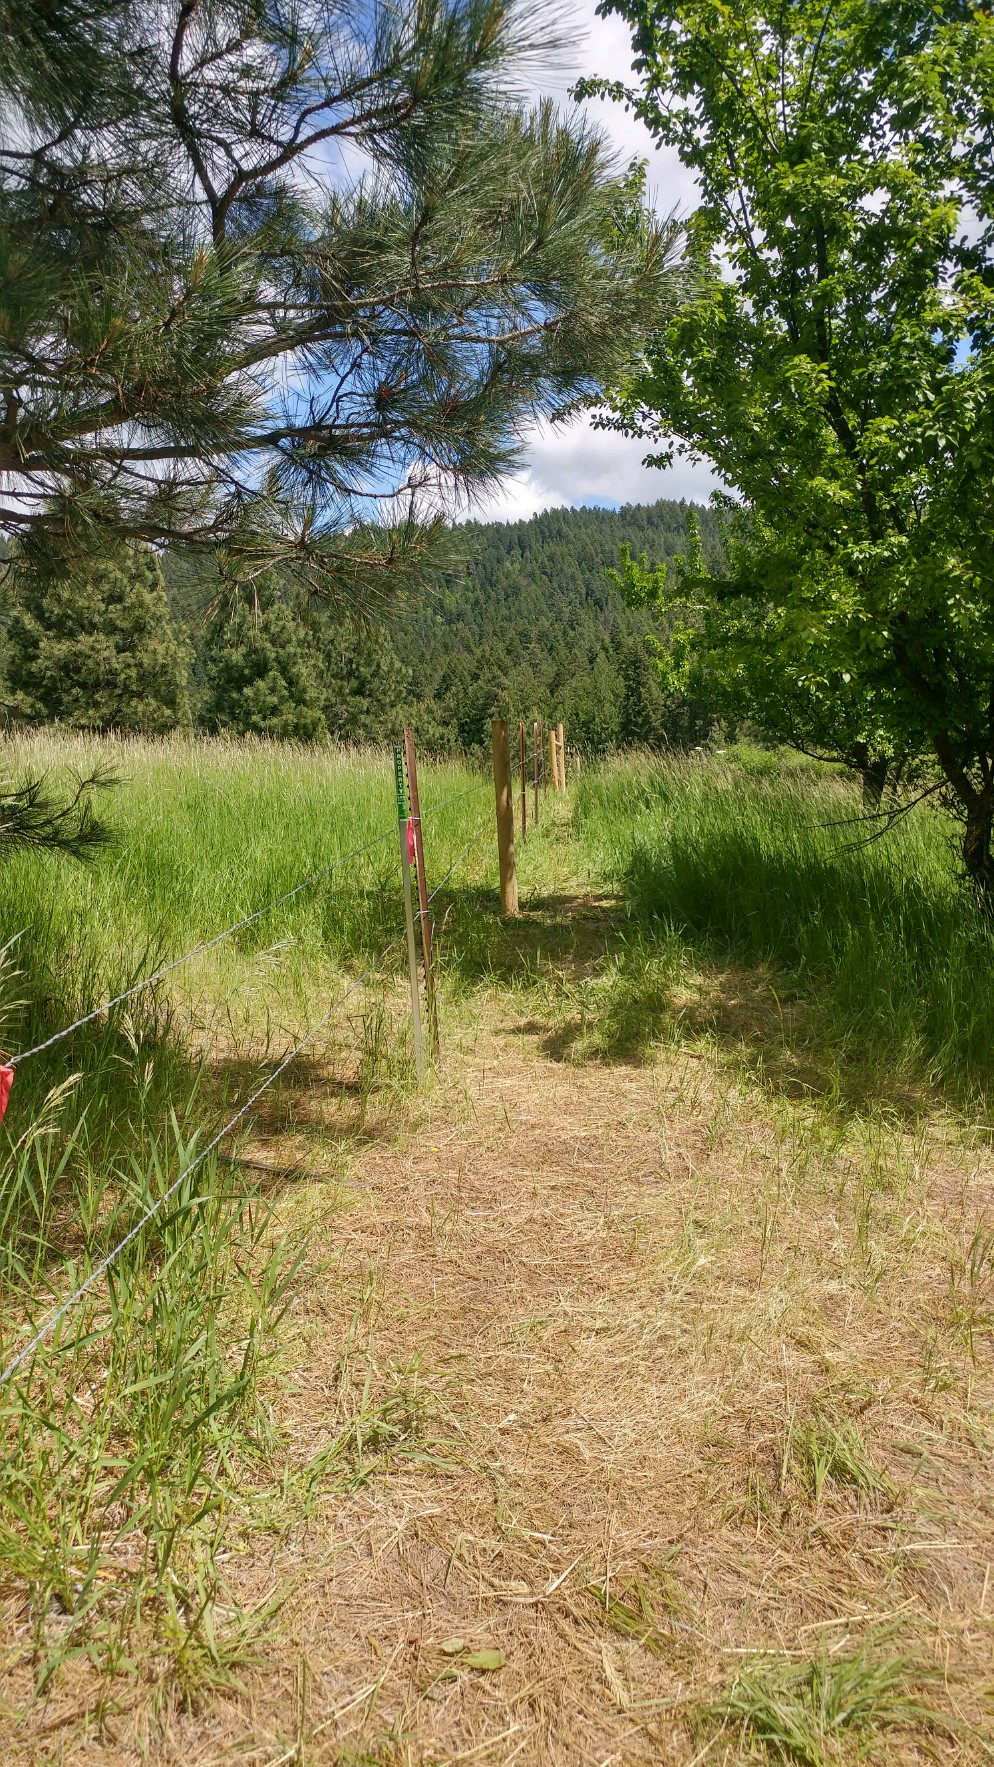 Wildlife-friendly fencing installed across the northern edge of the meadow.